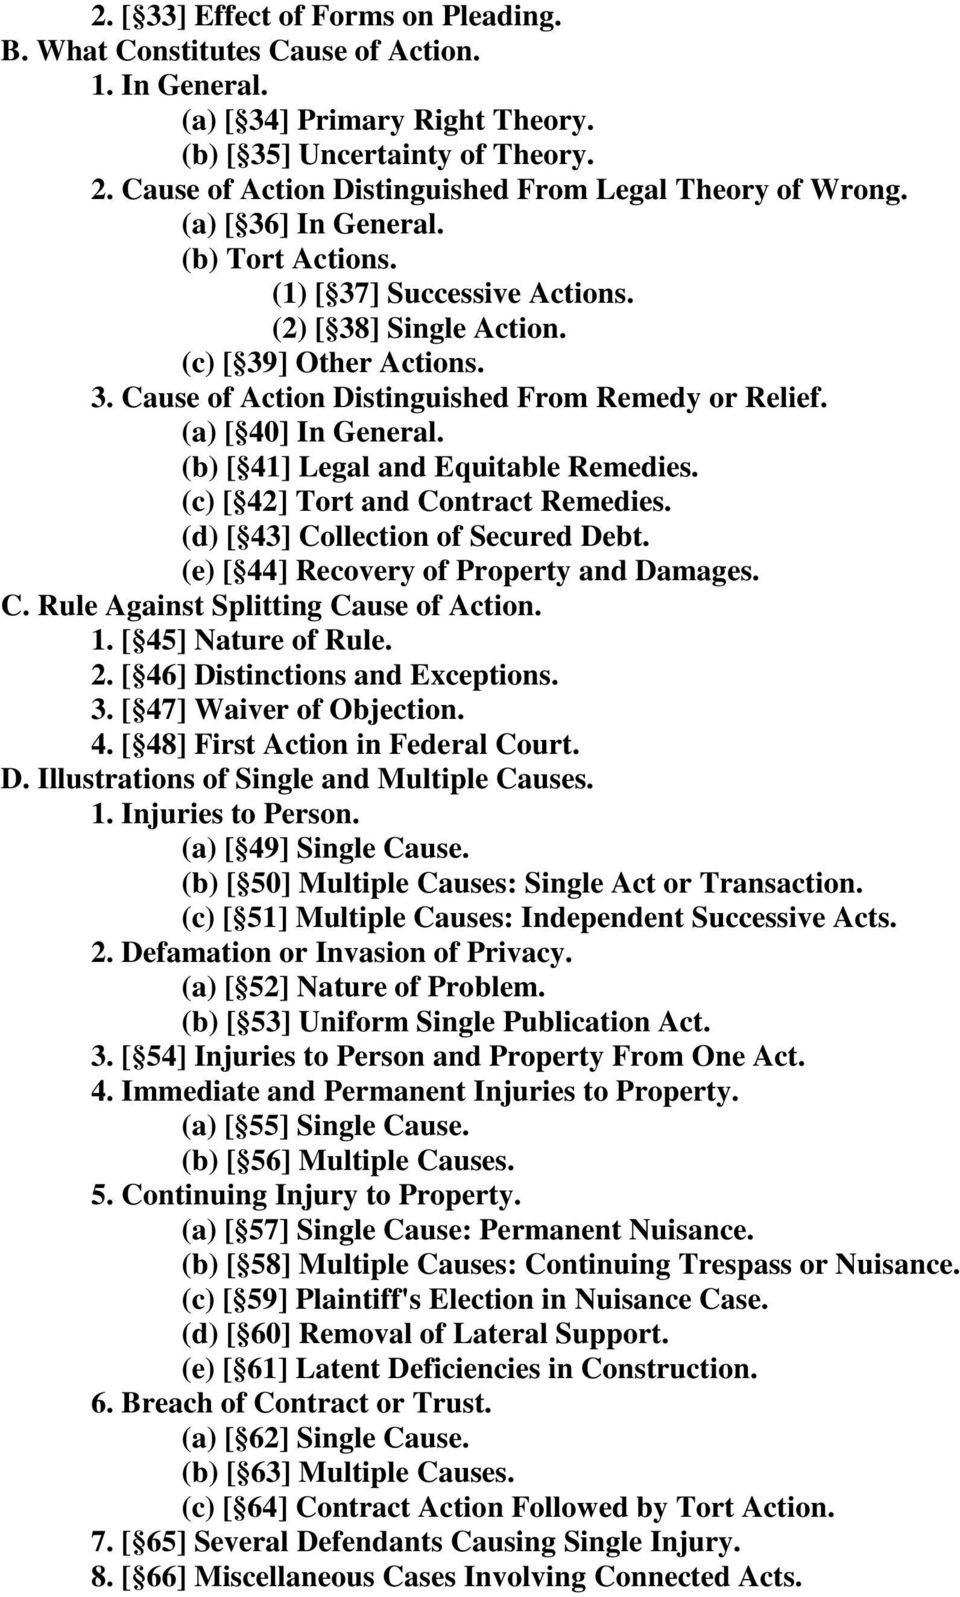 (a) [ 40] In General. (b) [ 41] Legal and Equitable Remedies. (c) [ 42] Tort and Contract Remedies. (d) [ 43] Collection of Secured Debt. (e) [ 44] Recovery of Property and Damages. C. Rule Against Splitting Cause of Action.